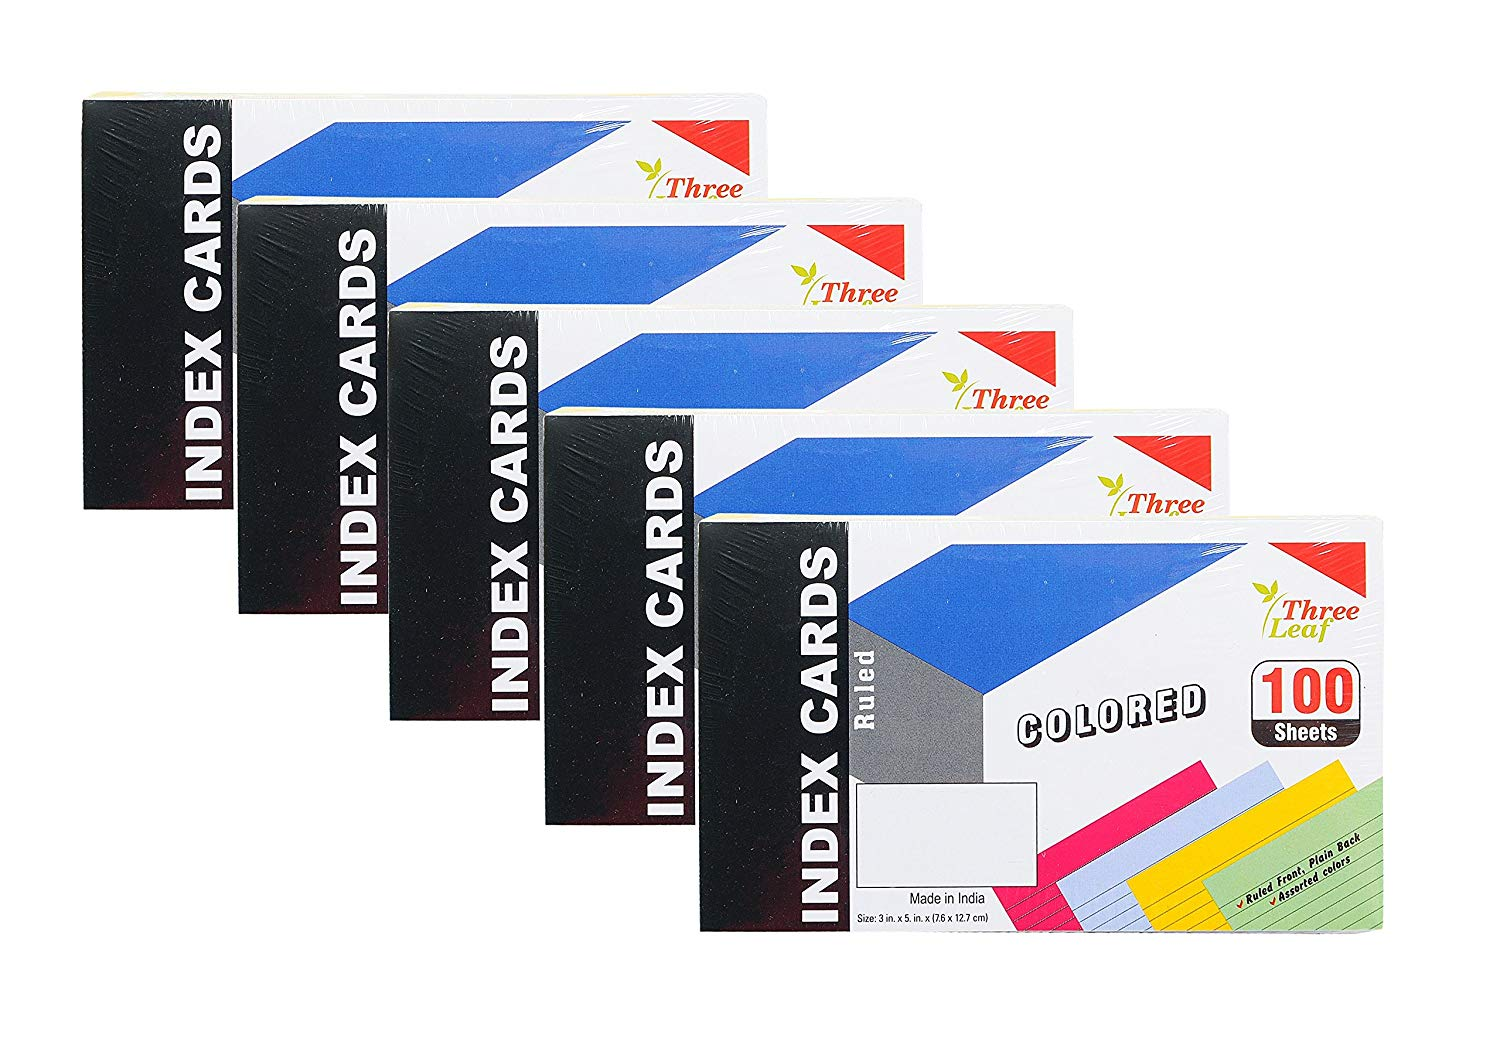 5-Pack Colored Index Cards, 3x5-Inch, Ruled, Canary-Cherry-Green-Blue, 25 of Each Color in Packs of 100. (5 Packs of 100)